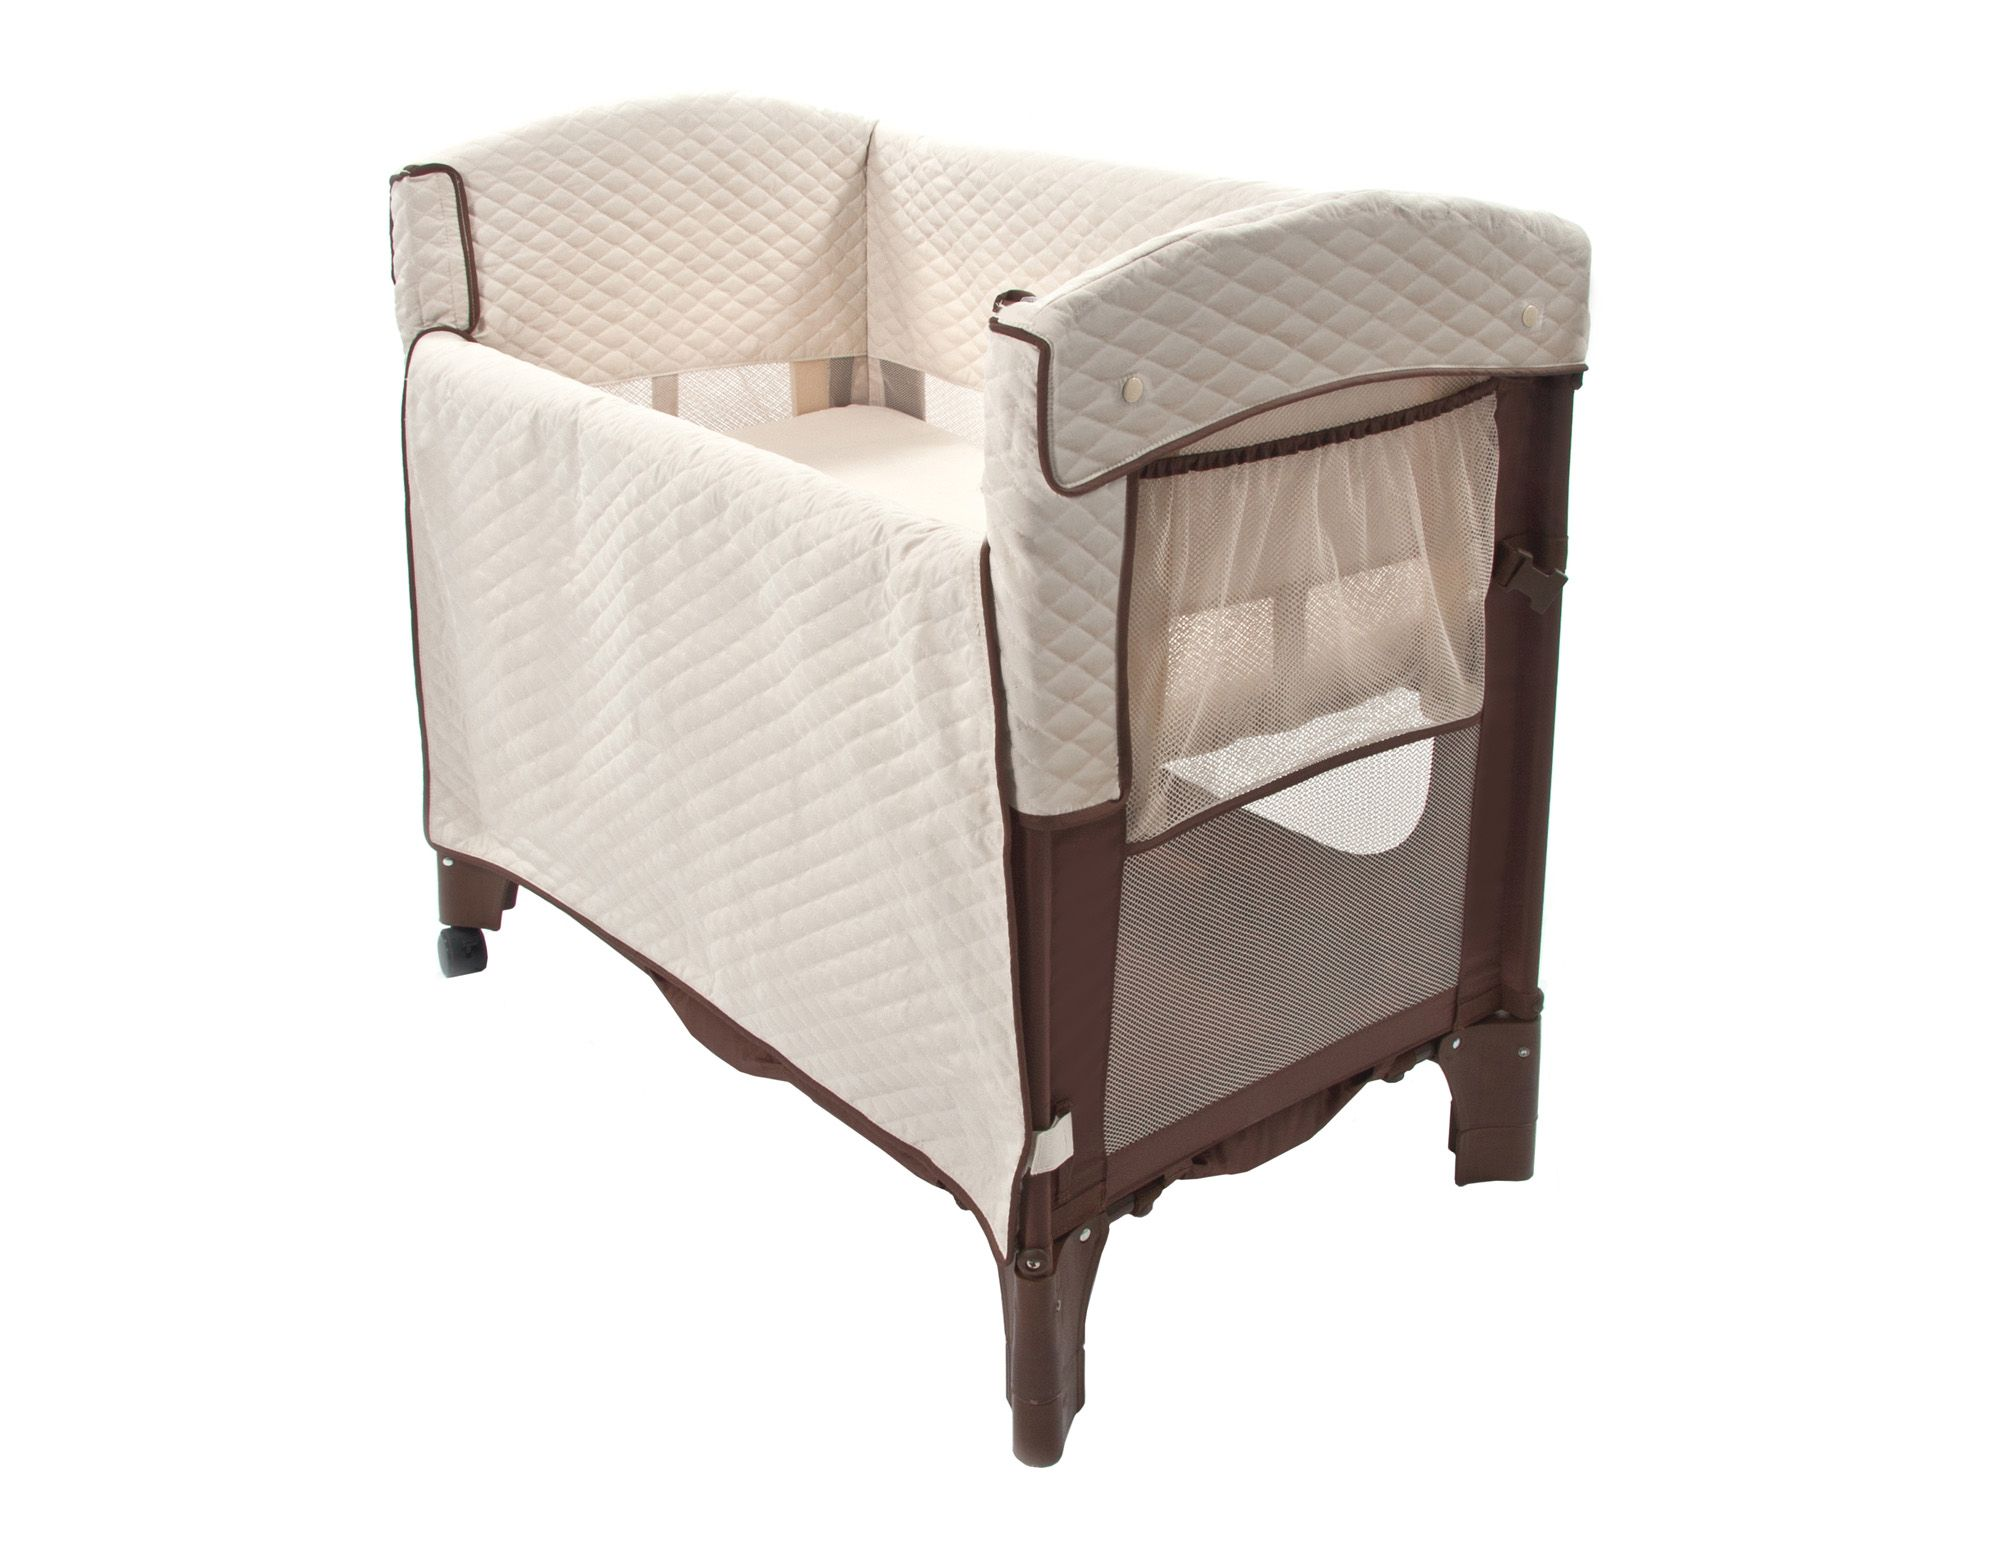 Mini Arc Convertible bassinet co sleeper playpen